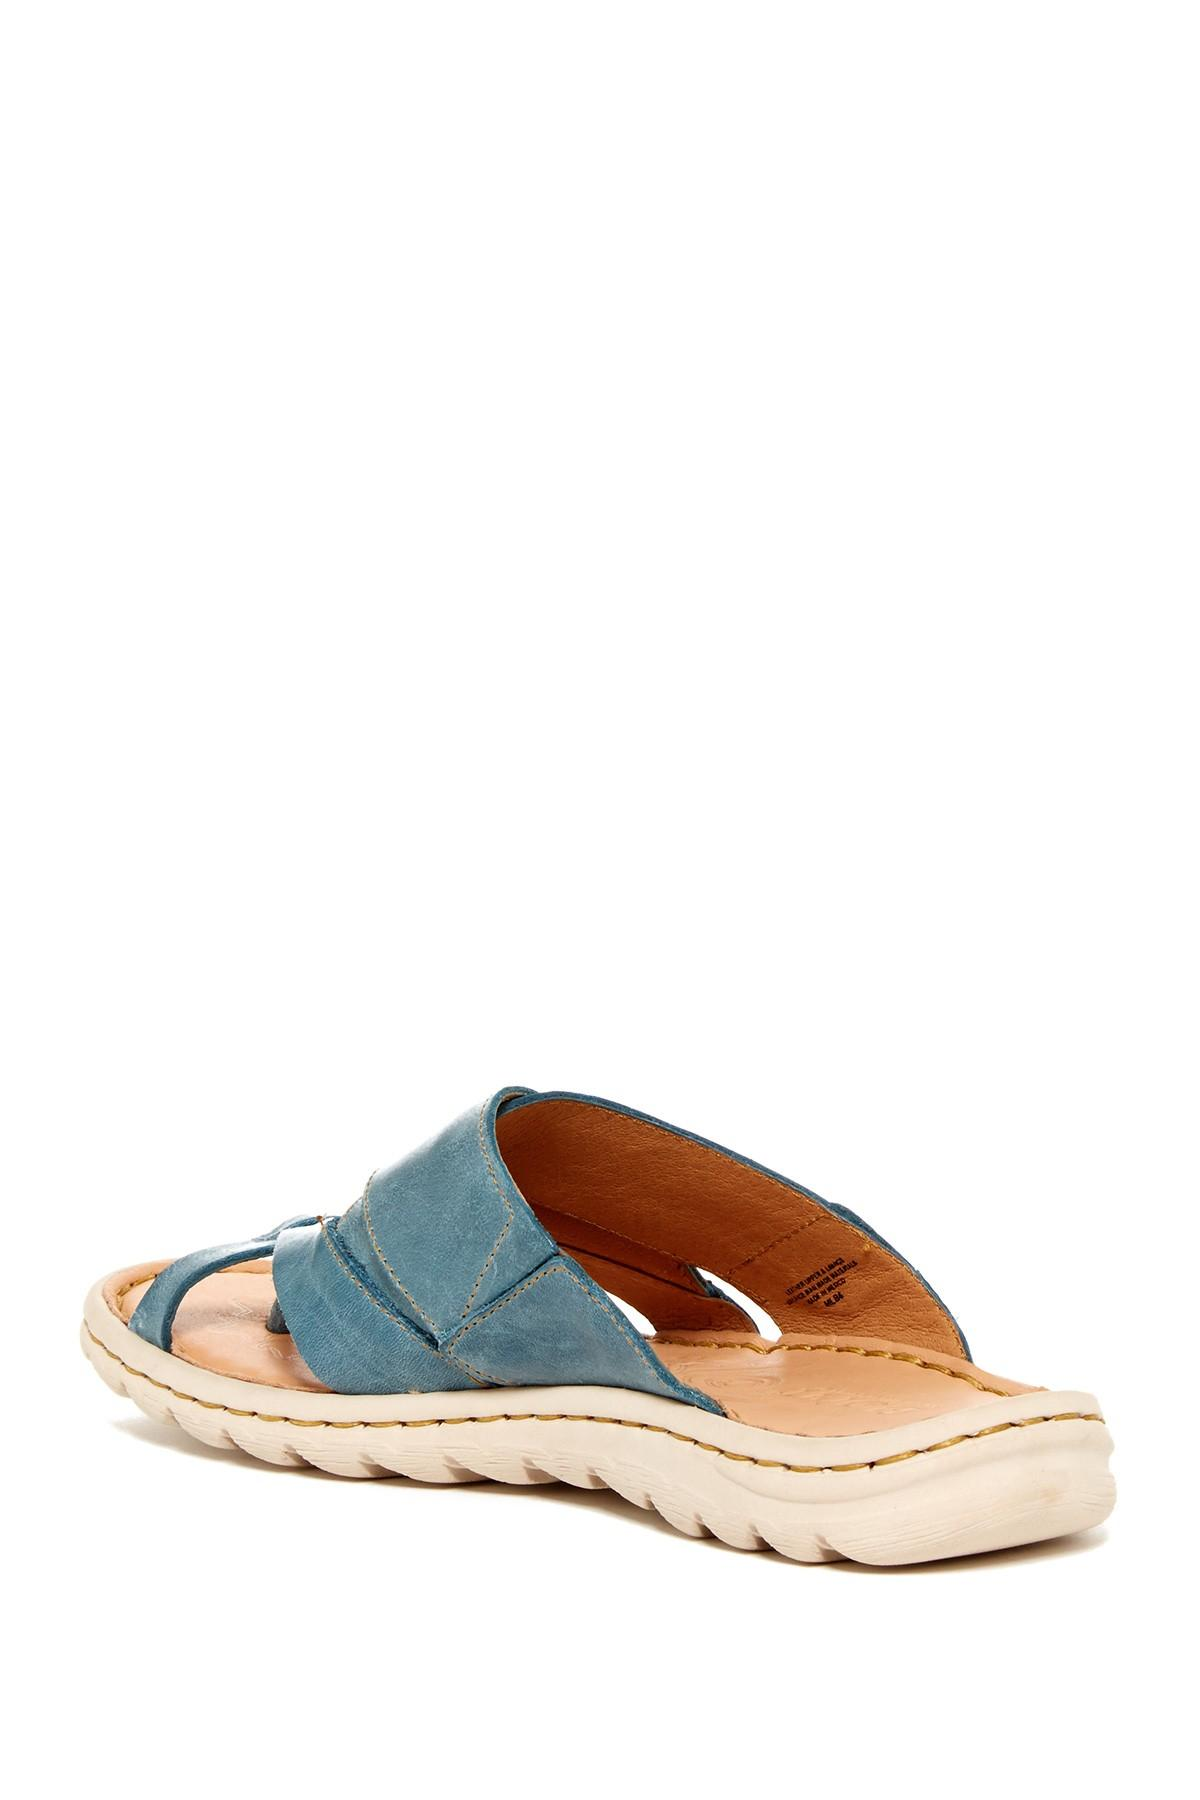 Lyst Born Sorja Sandal In Blue